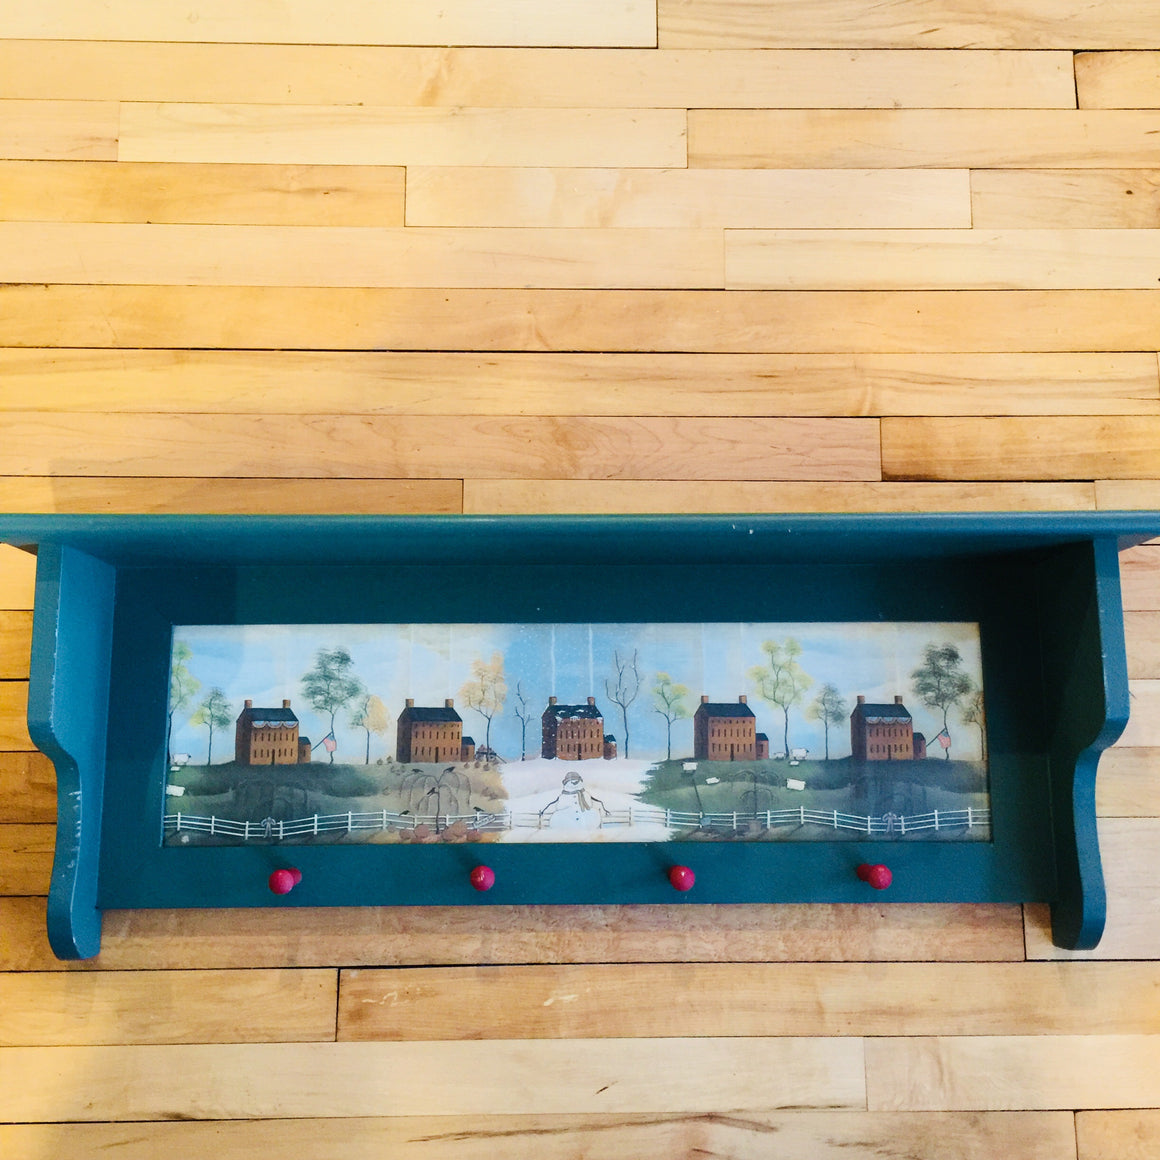 Wall Hanging Plate Shelf With Pegs (Green)